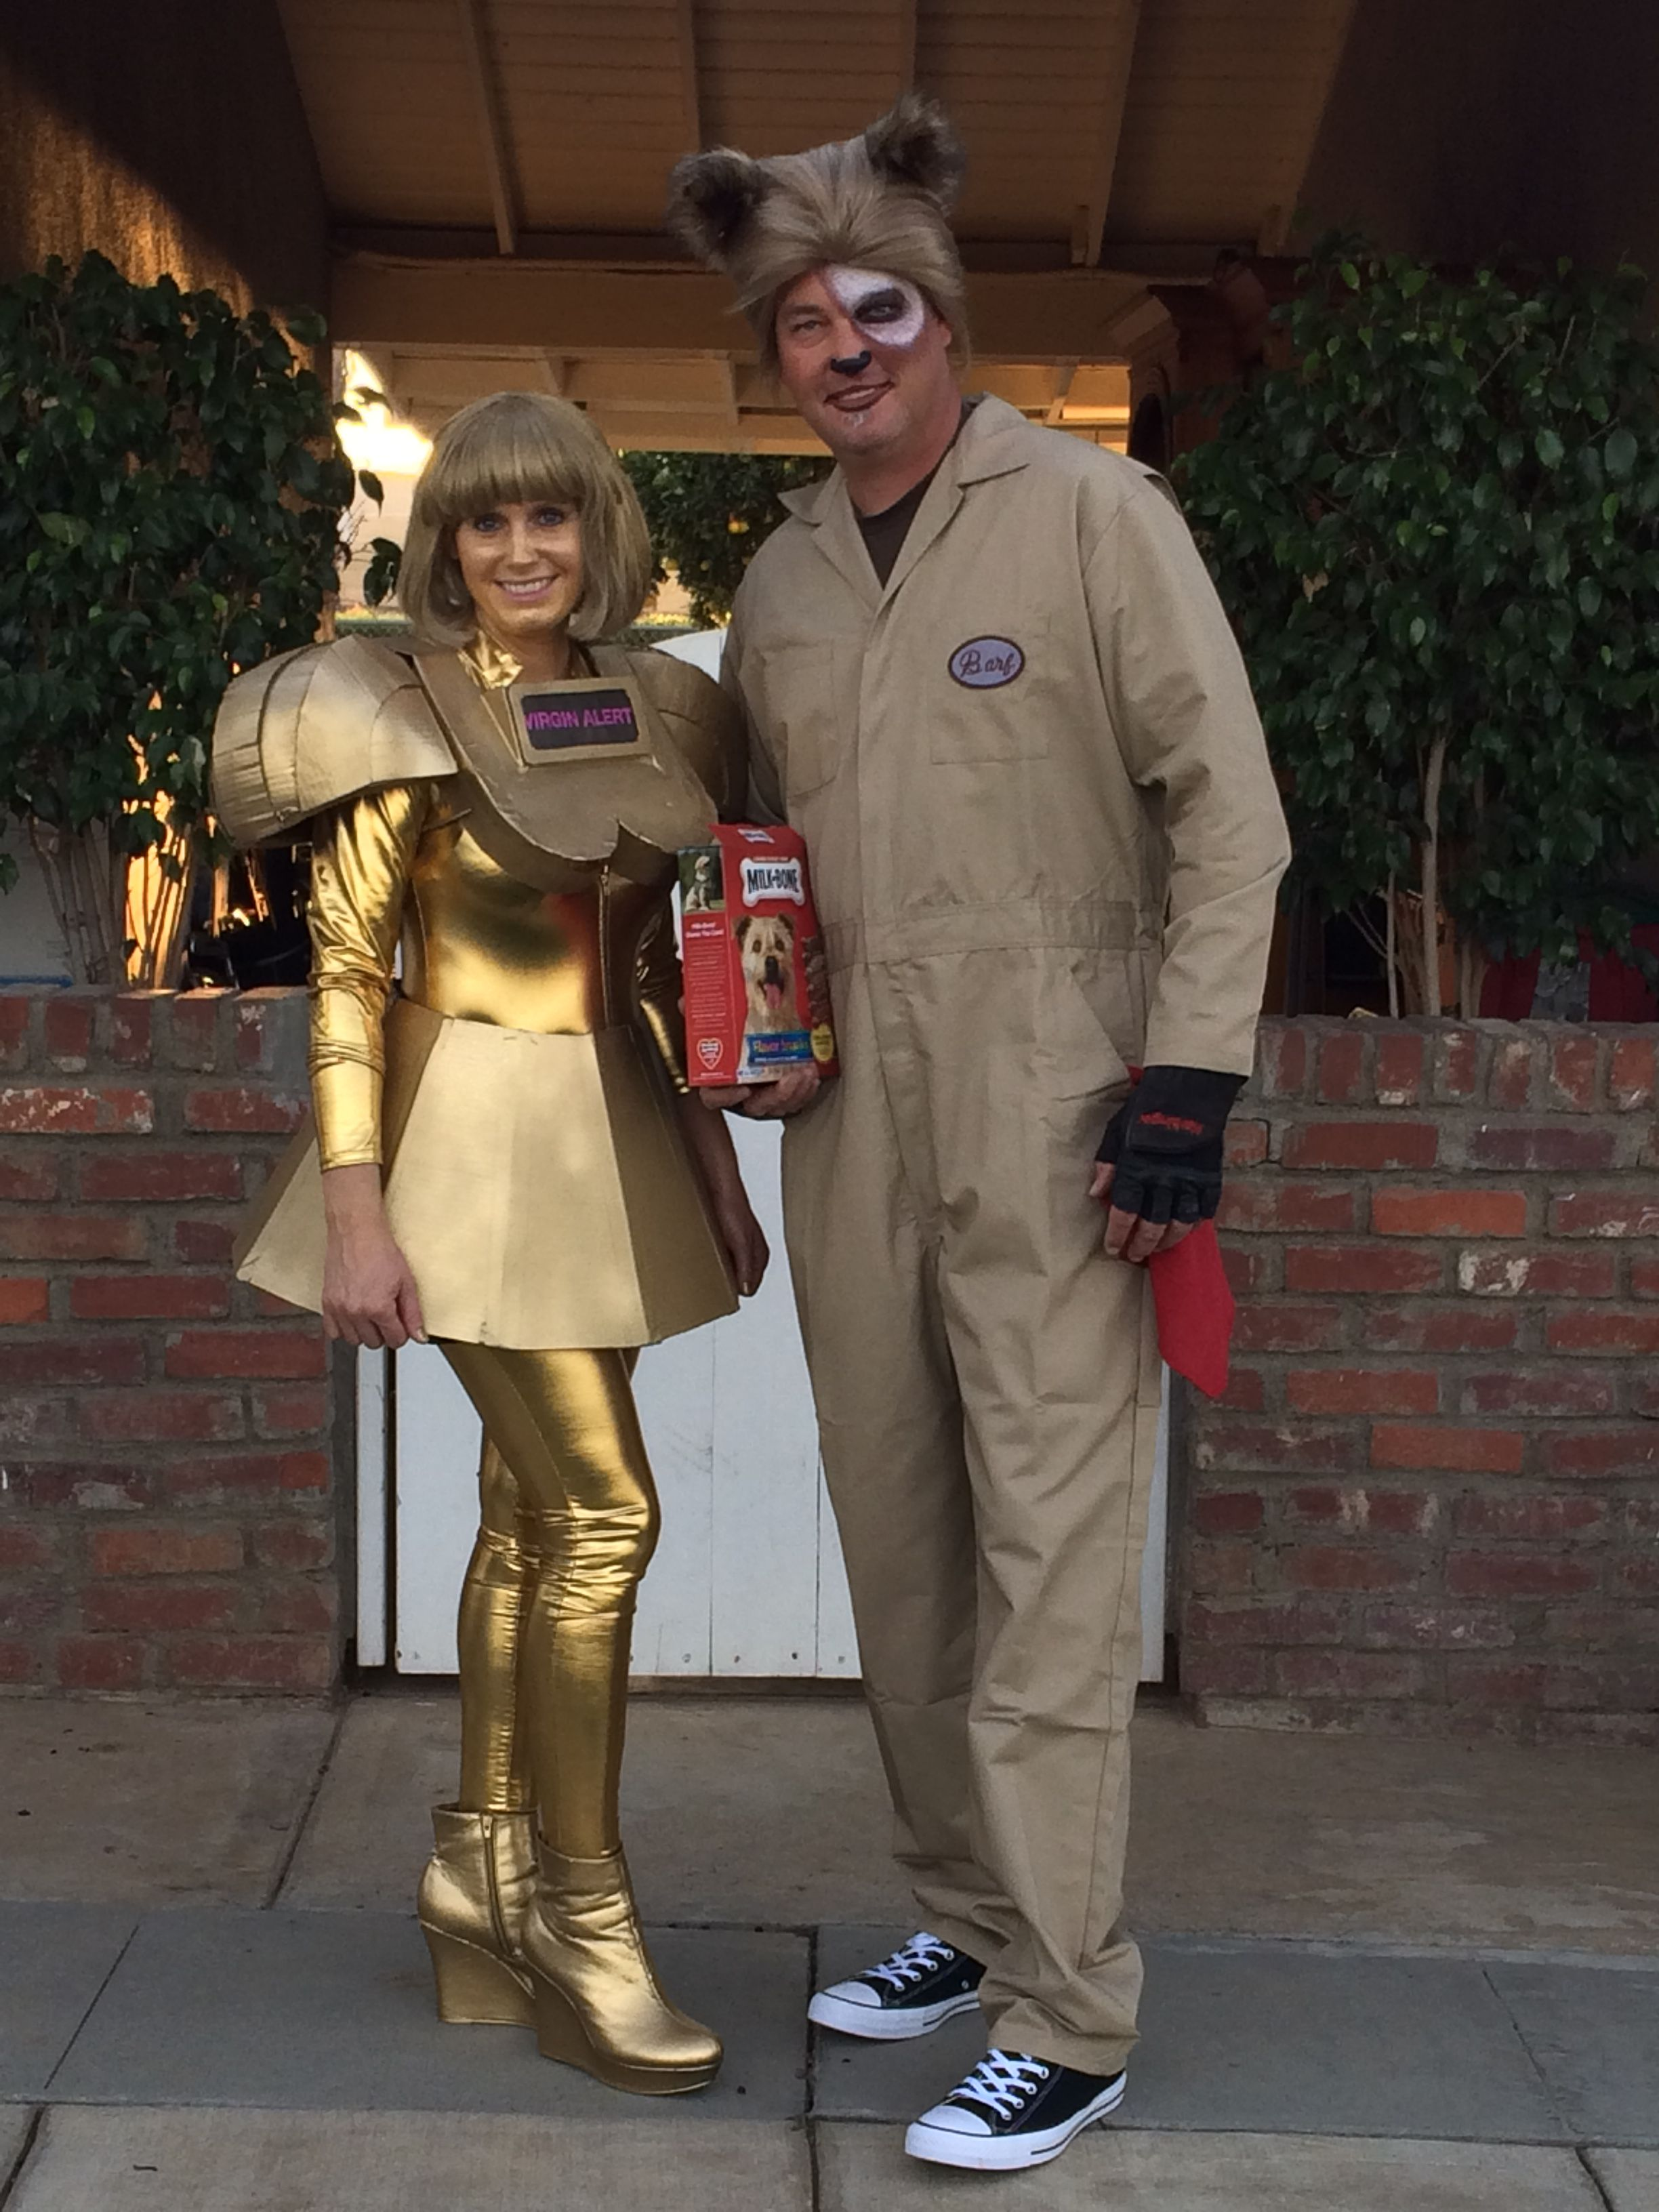 Dot Matrix Barf From Spaceballs Halloween Costumes In 2019